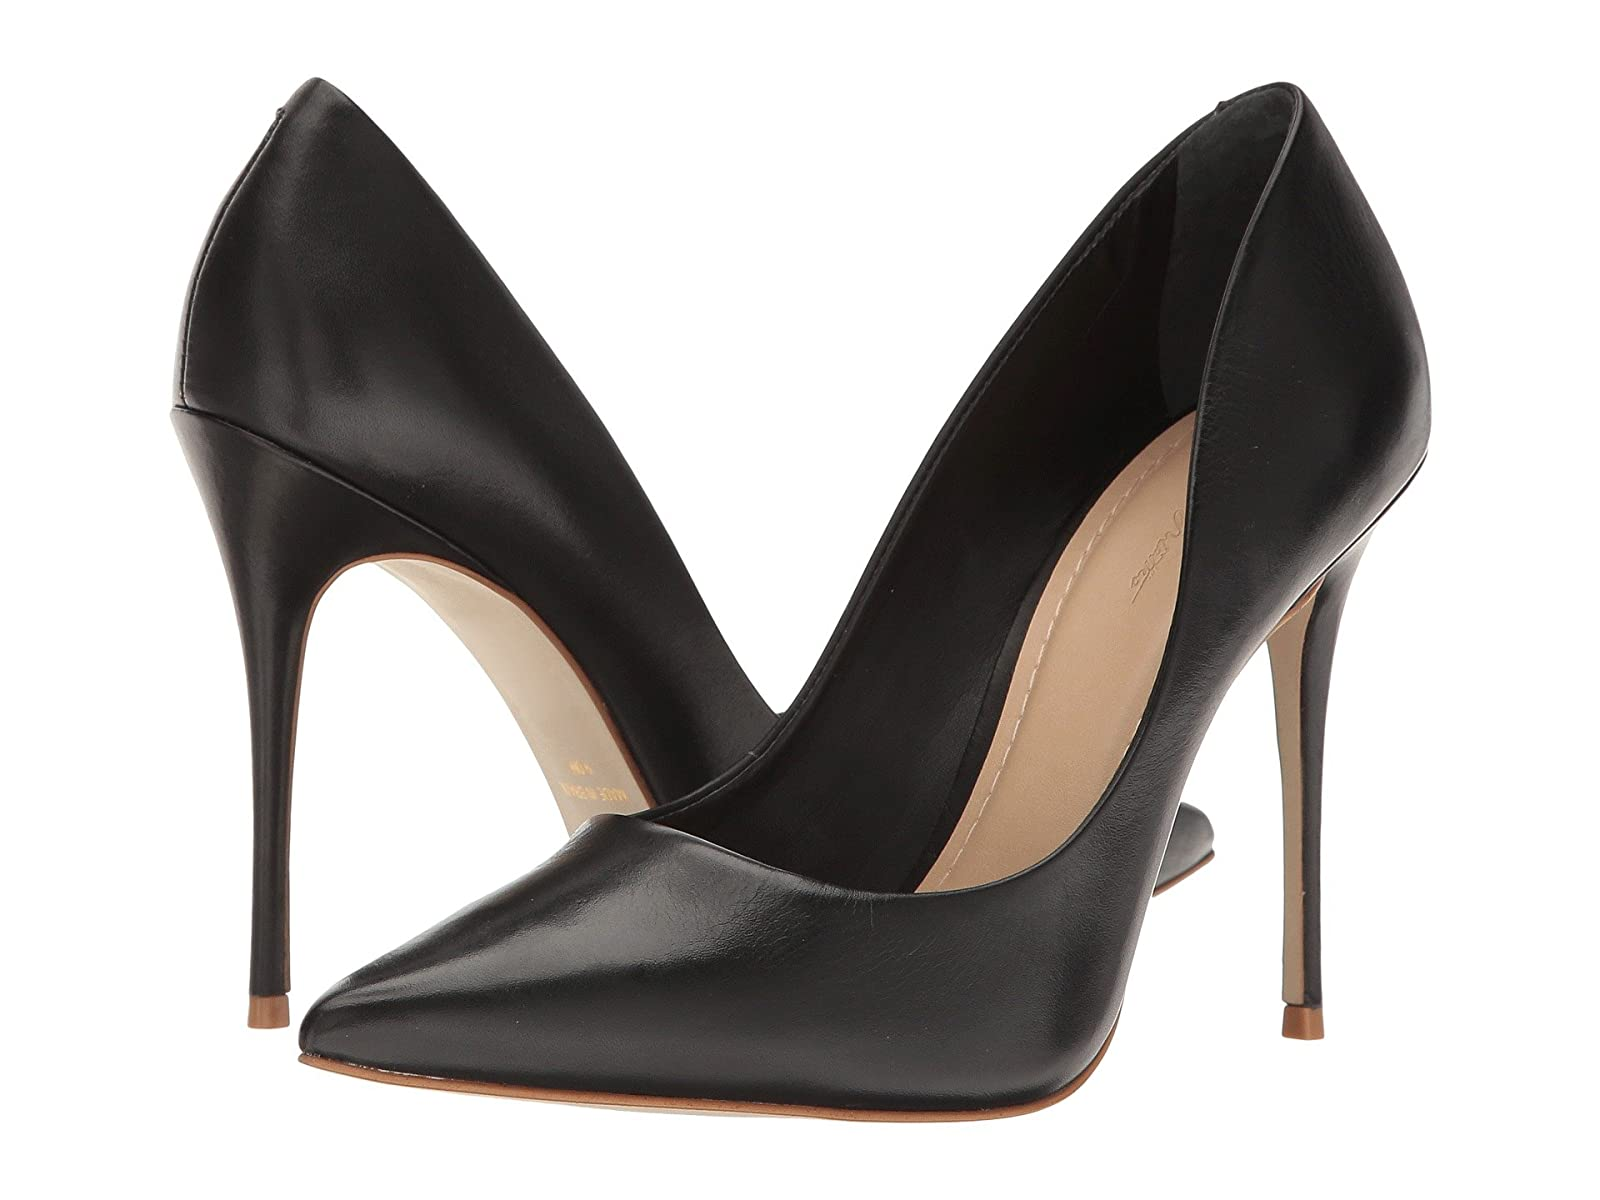 Massimo Matteo Pointy Toe Pump 17Atmospheric grades have affordable shoes